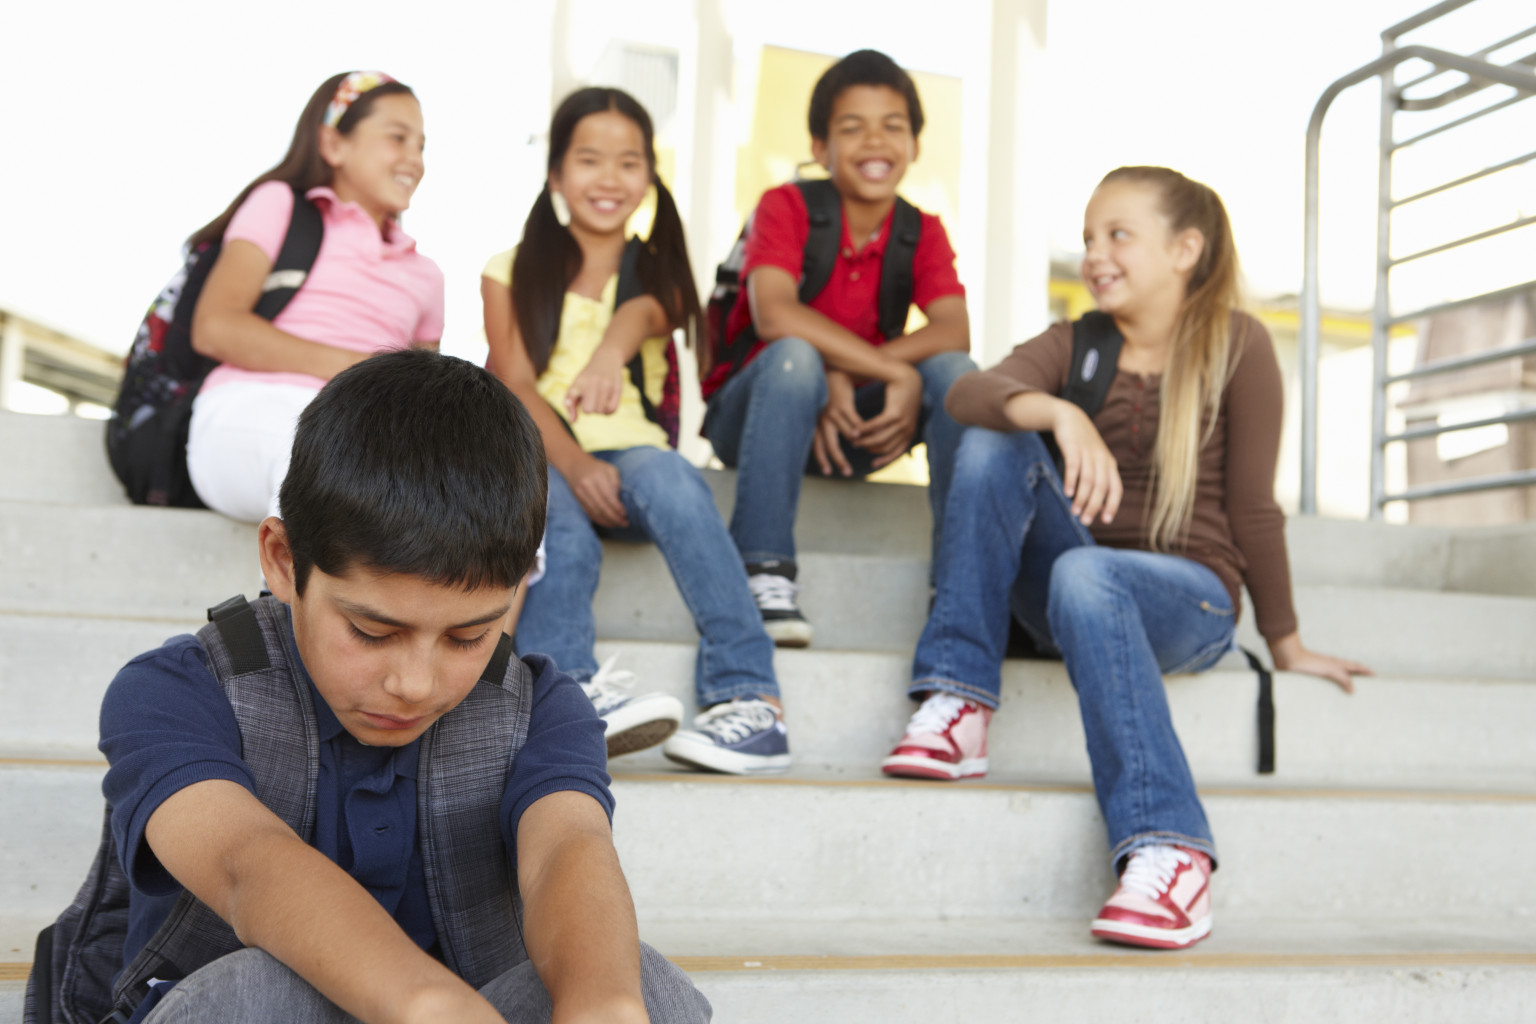 What Does Assertiveness Have to Do with Stopping Bullying?